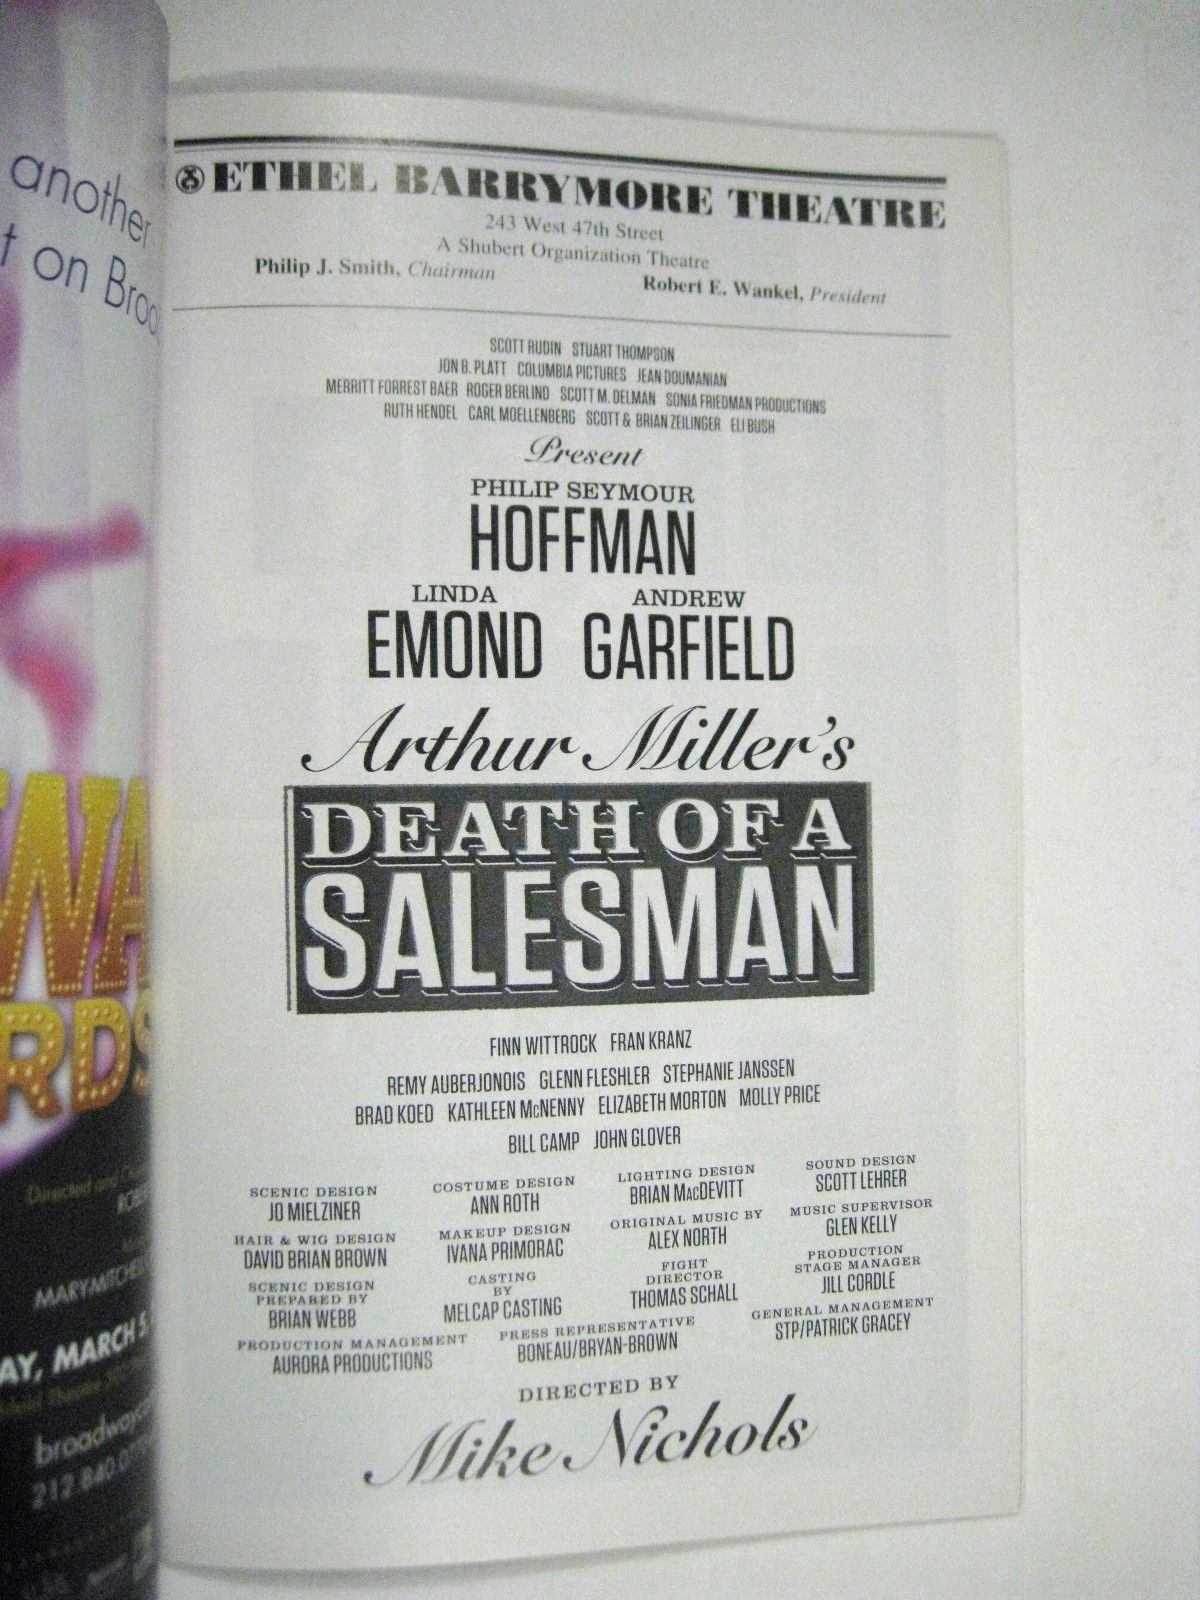 Death of a Salesman Playbill March 2012 Barrymore Theatre Philip Hoffman Glover